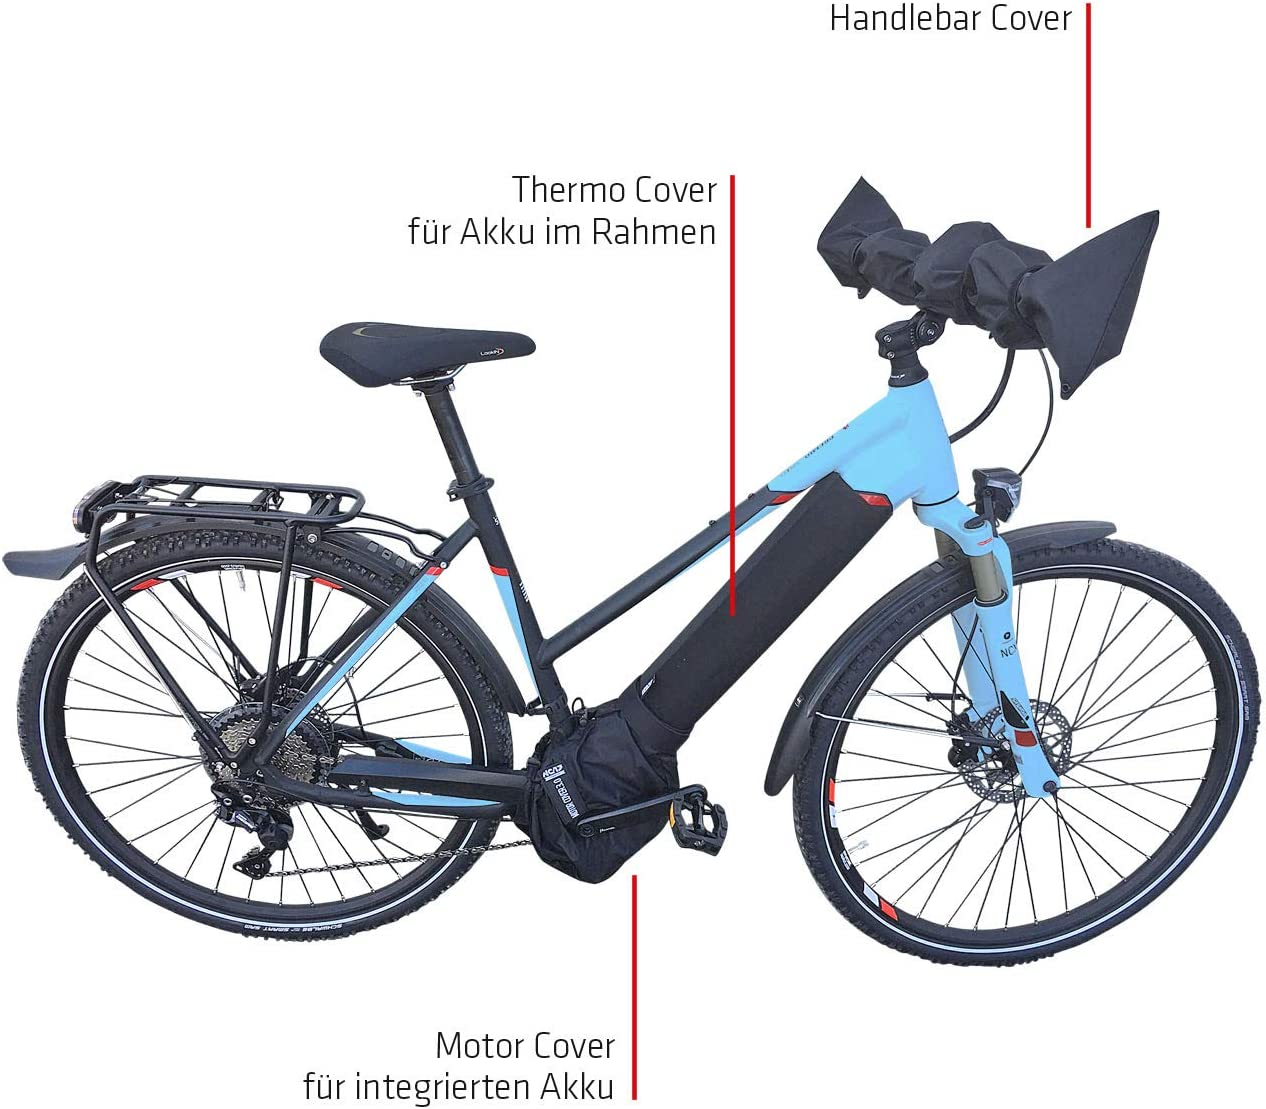 Adult Connect E-Bike Protective Case Standard for Battery in Lower Tube//Battery Thermal Cover//Neoprene//Black One Size NC-17 Unisex